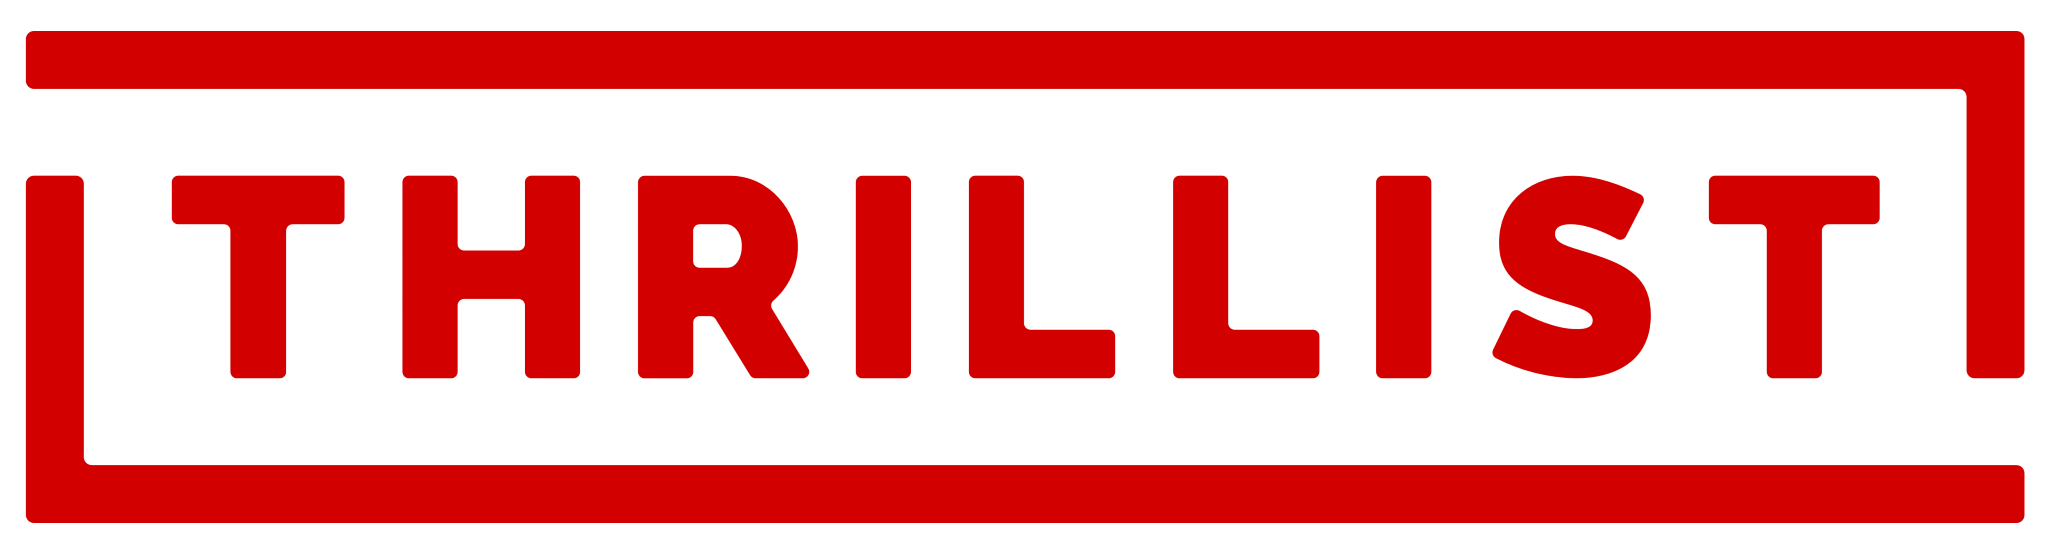 Thrillist_logo_image_picture.png